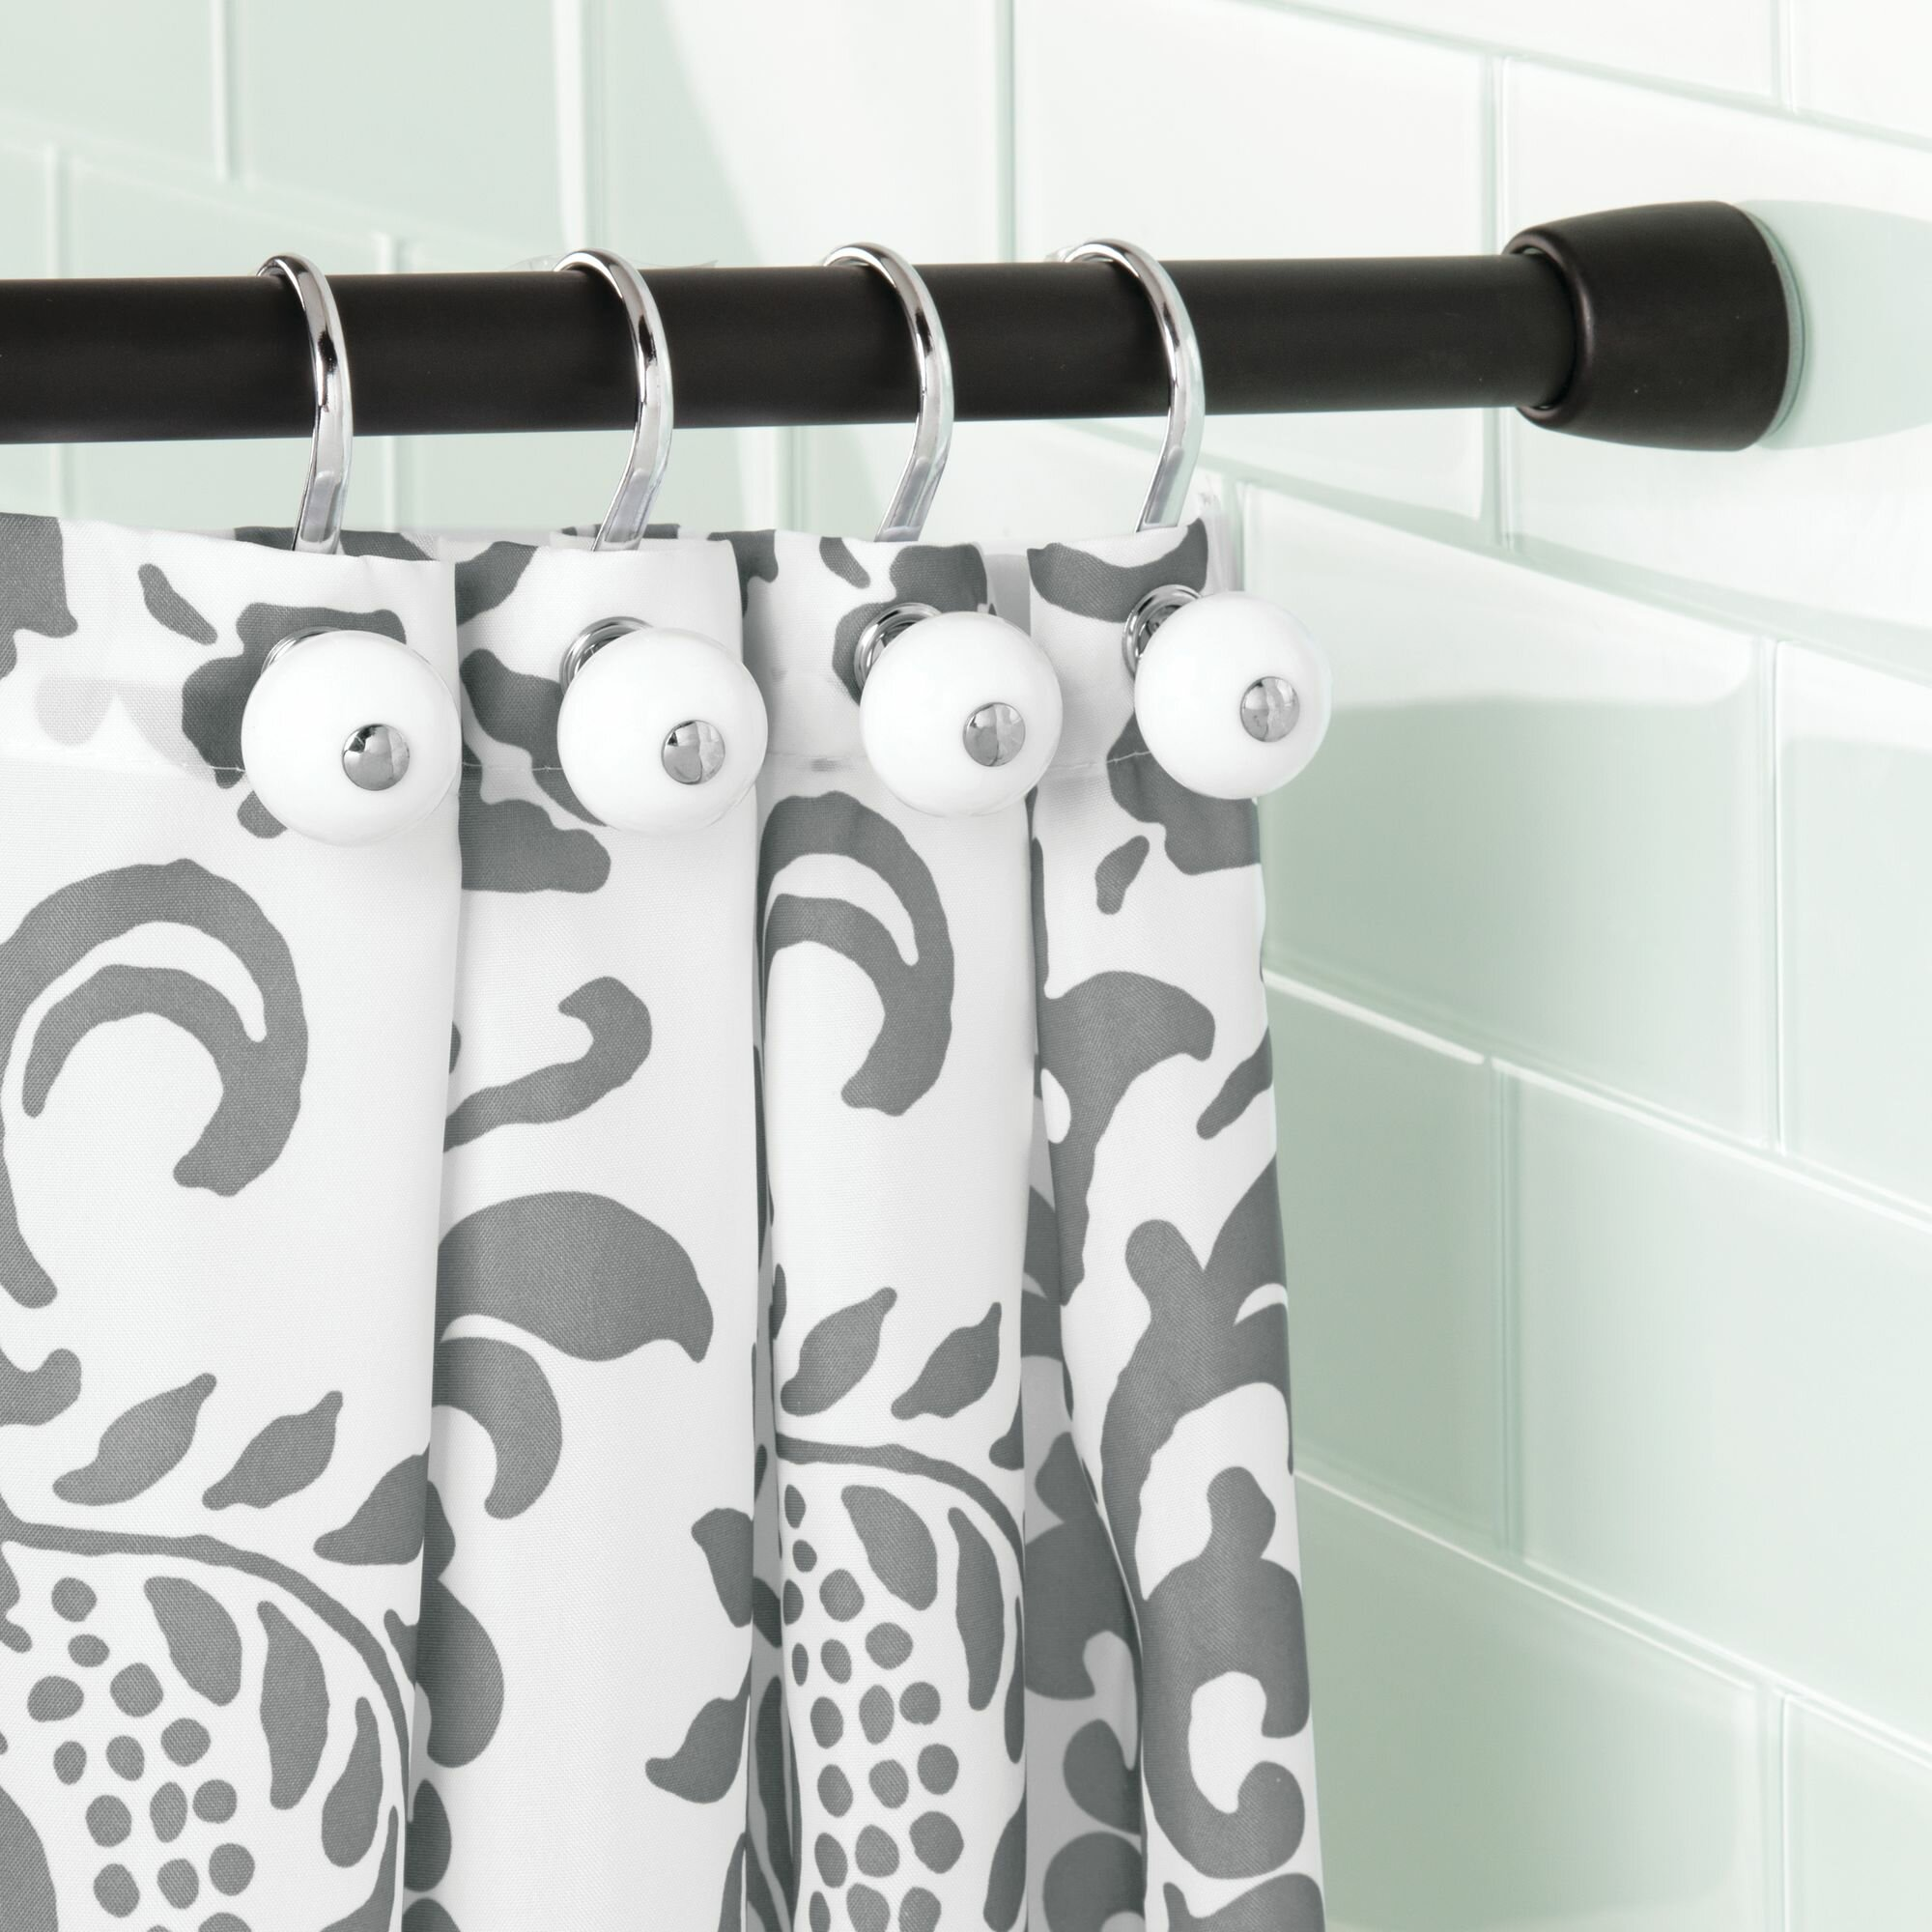 Symple Stuff Proulx 26 3 Adjustable Straight Tension Shower